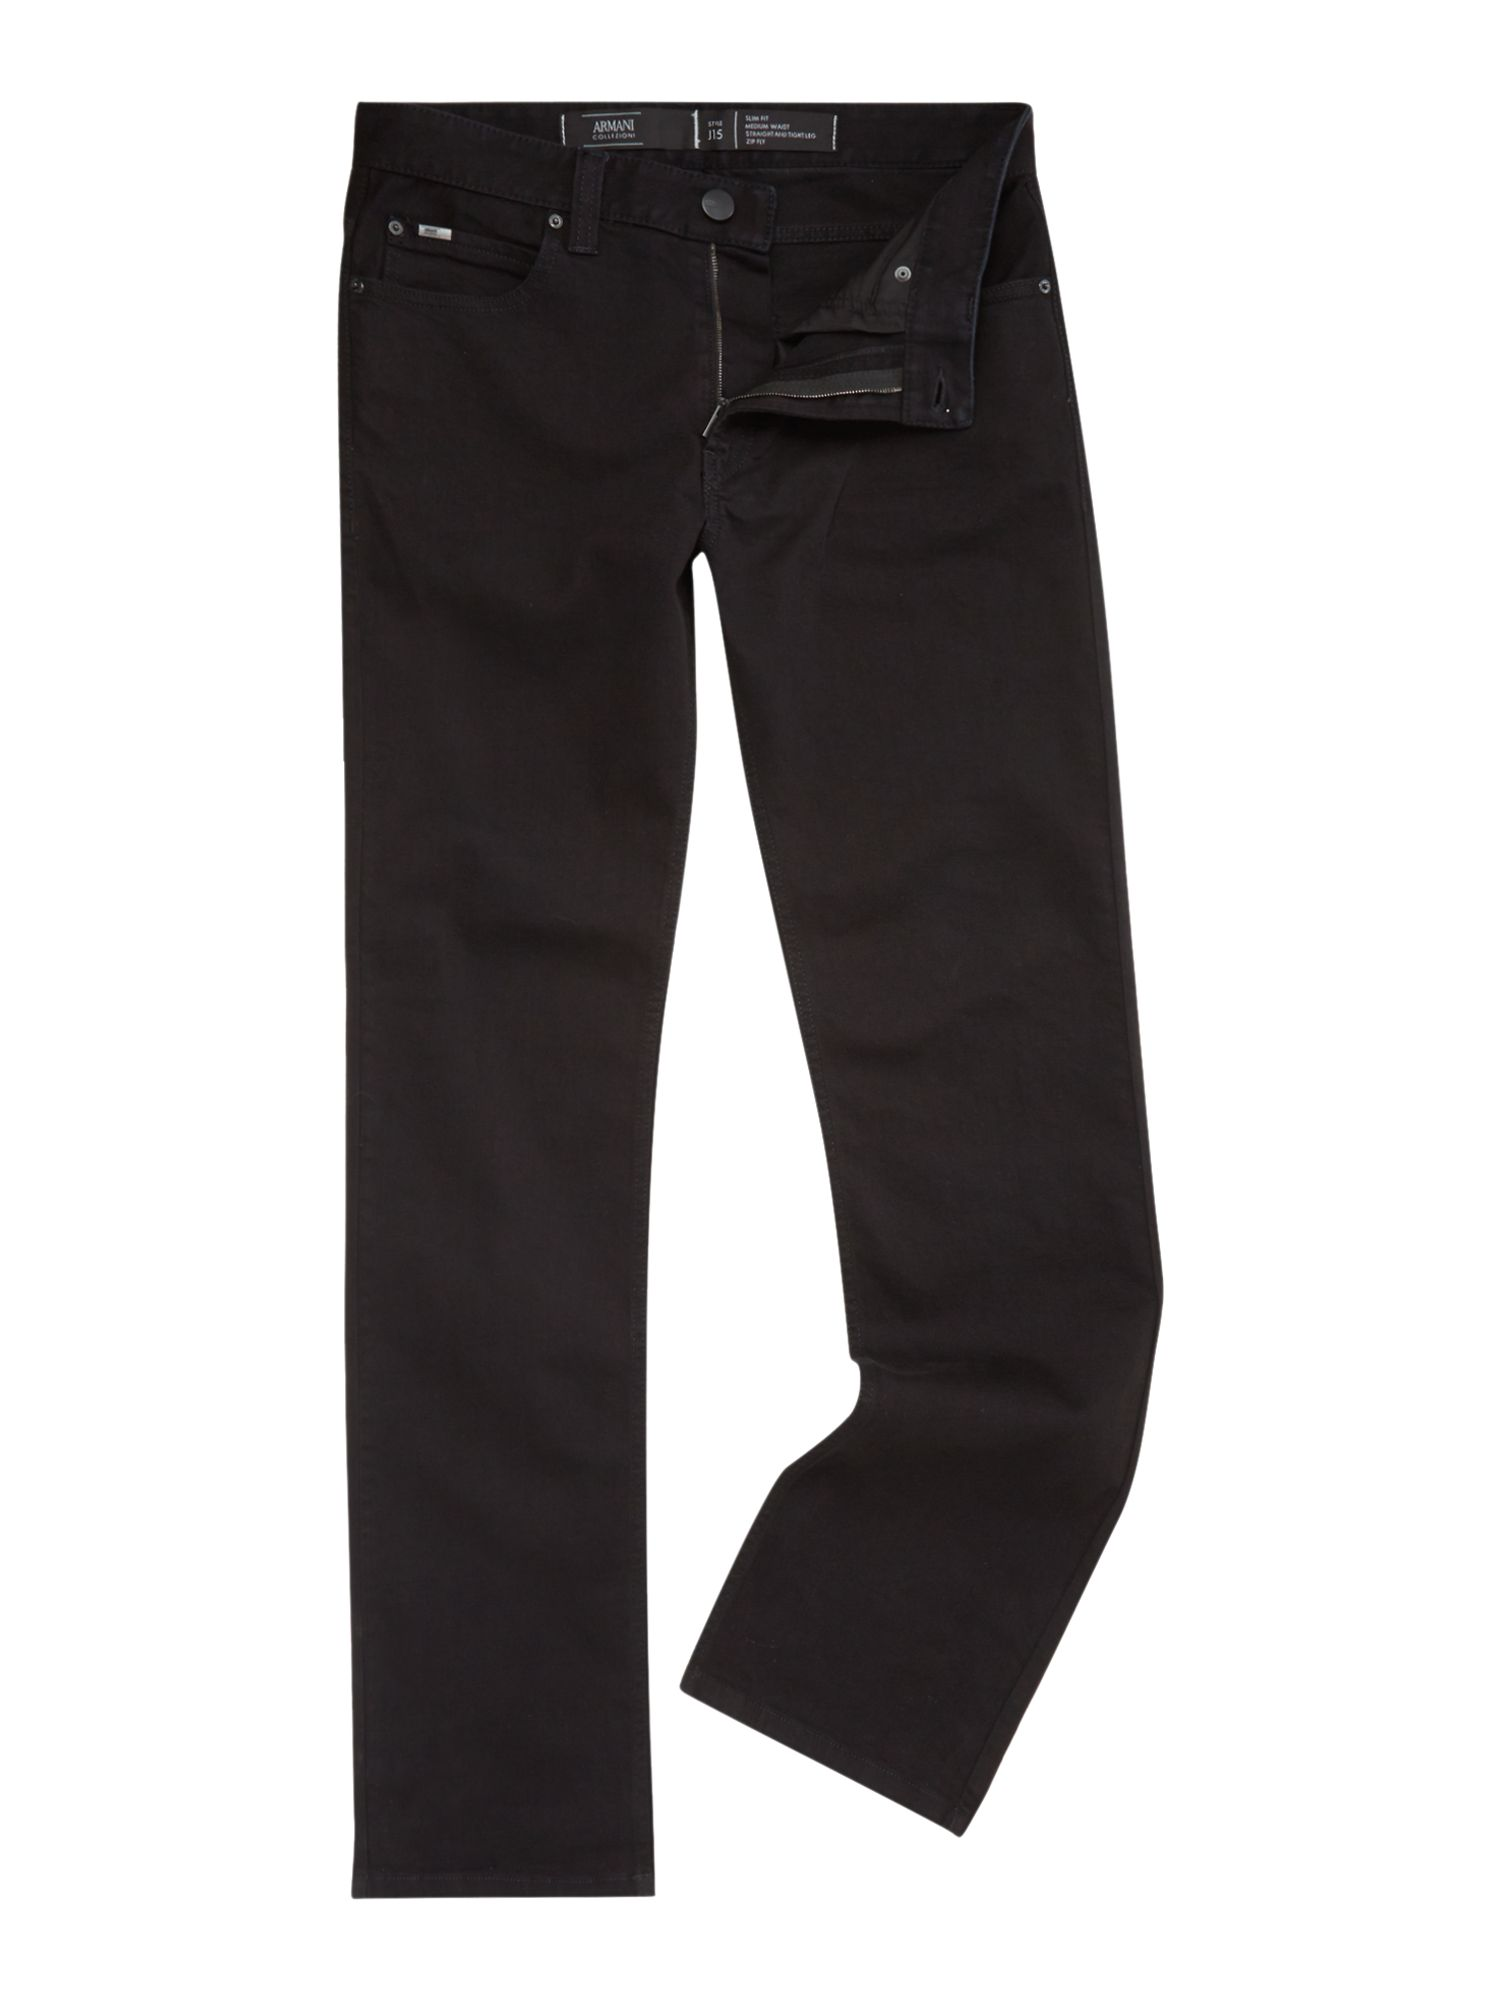 Regular fit straight leg black jeans